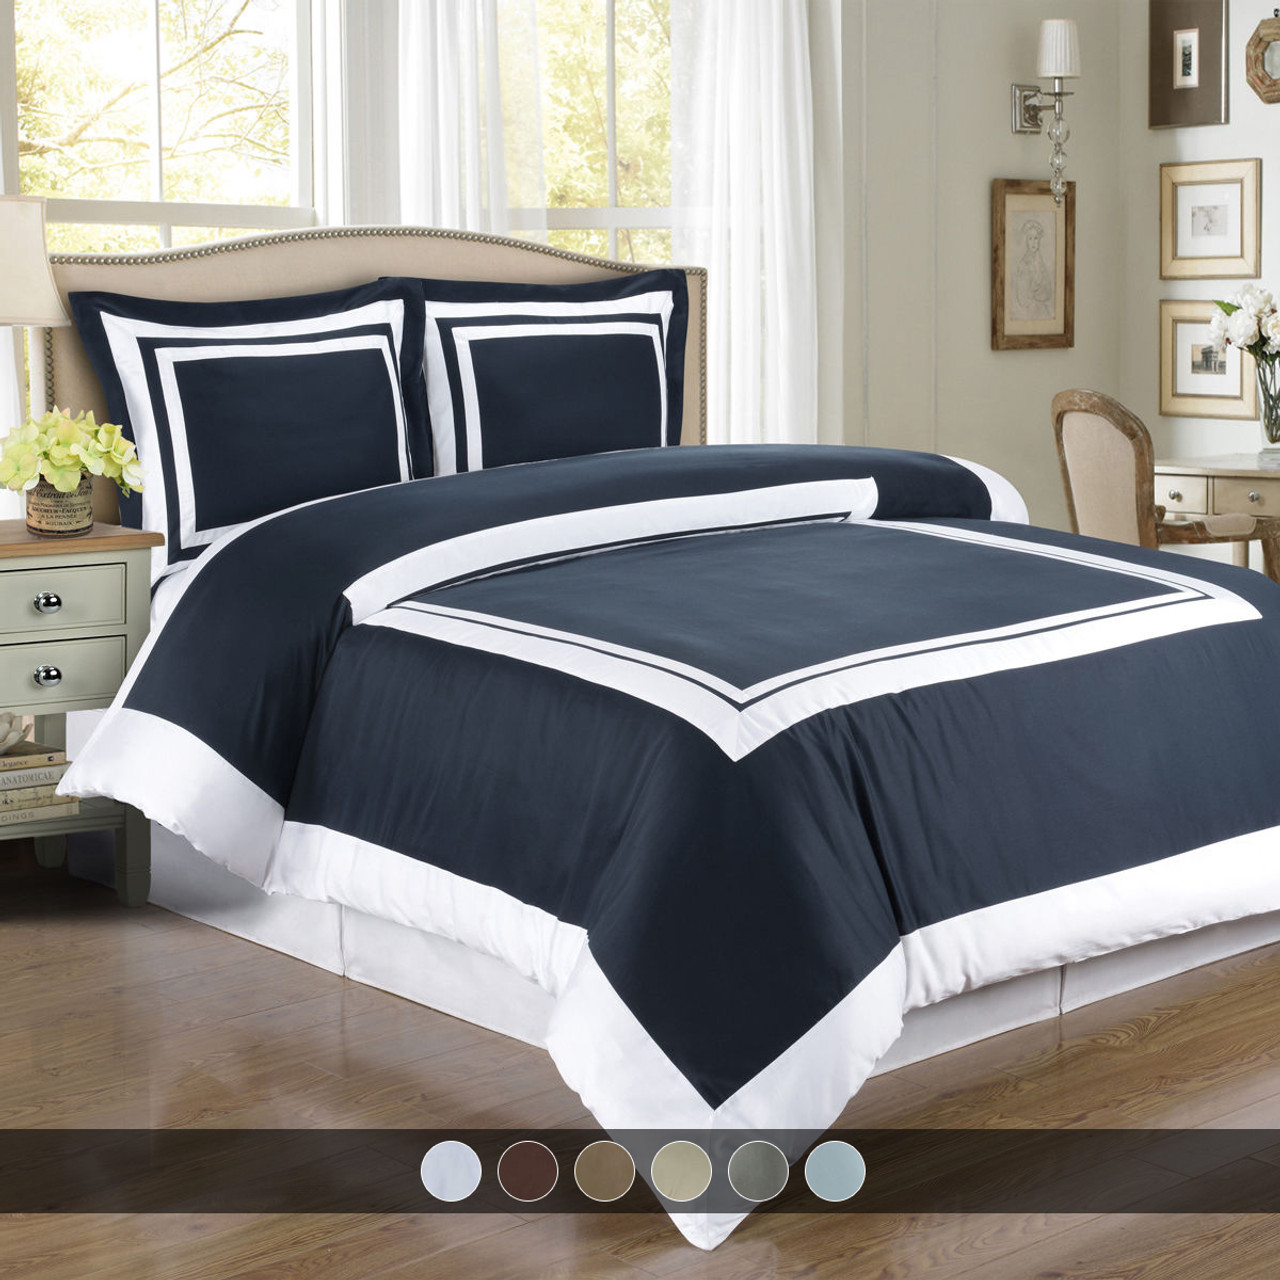 4 Styles 3 Sizes LUXURIOUS Sierra 100/% Egyptian Cotton Duvet Cover Sets